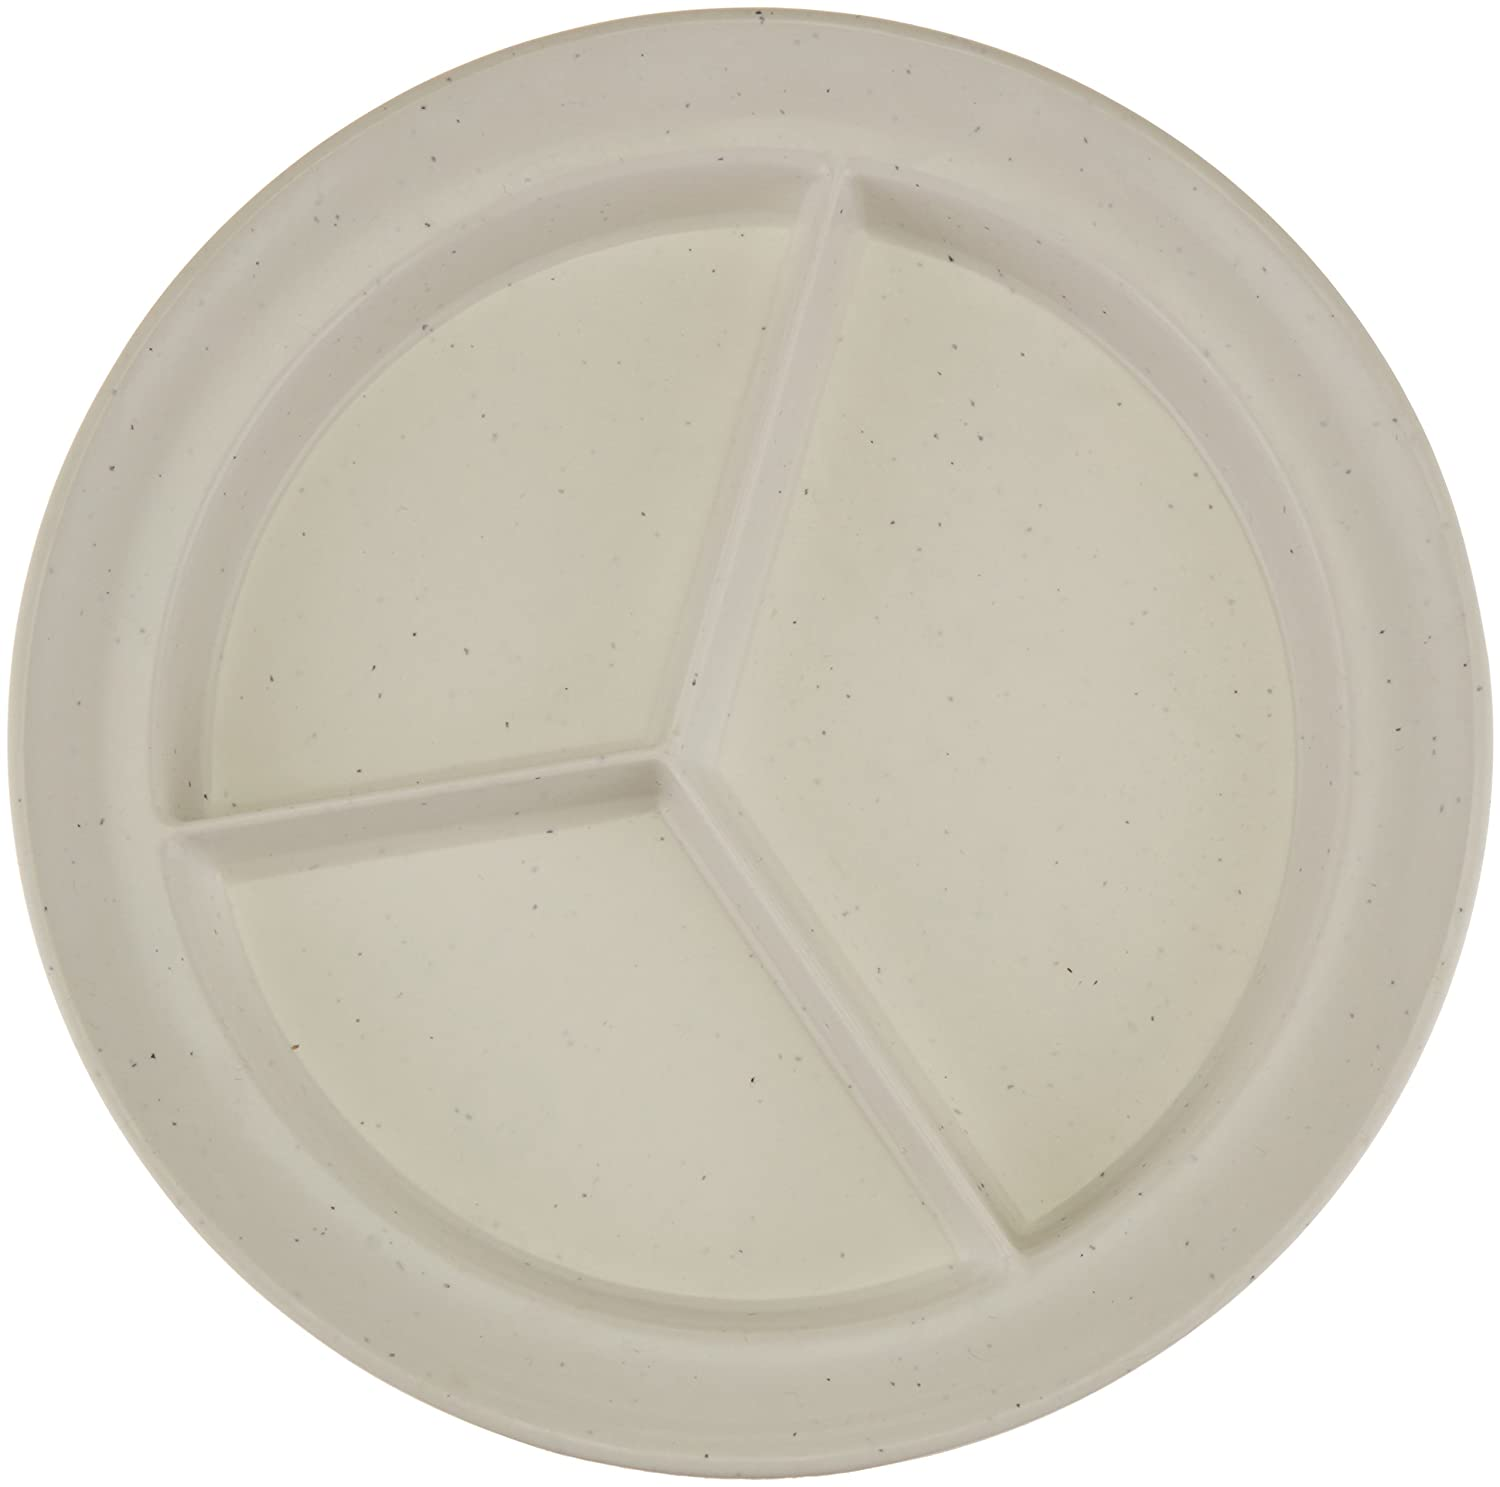 "Sammons Preston Compartment Dishes, Break-Resistant Polyester Plastic with Non-Skid Bottom, 8.75"" Diameter, .75"" High Sides & .75"" Rim for Easy Scooping, Adaptive Eating Tool & Food Organizer"